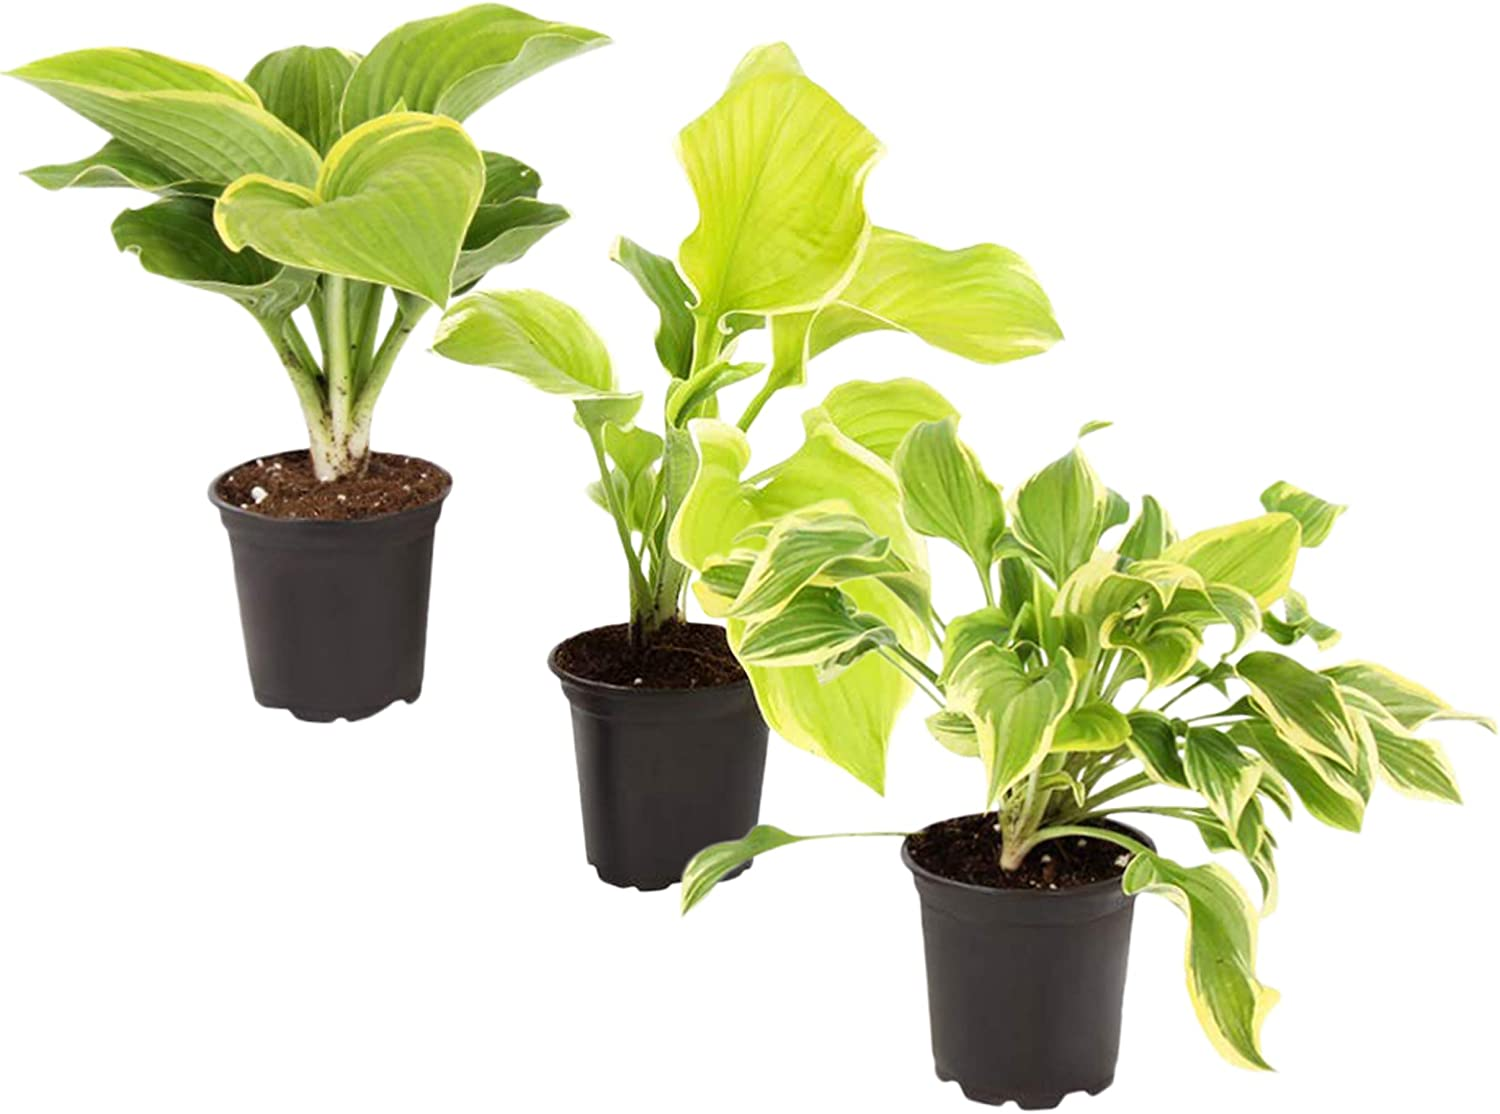 The Three Company Beautiful Live 1 Quart Hostas (3 Per Pack), Accent and Landscape Plant, Assorted Colors